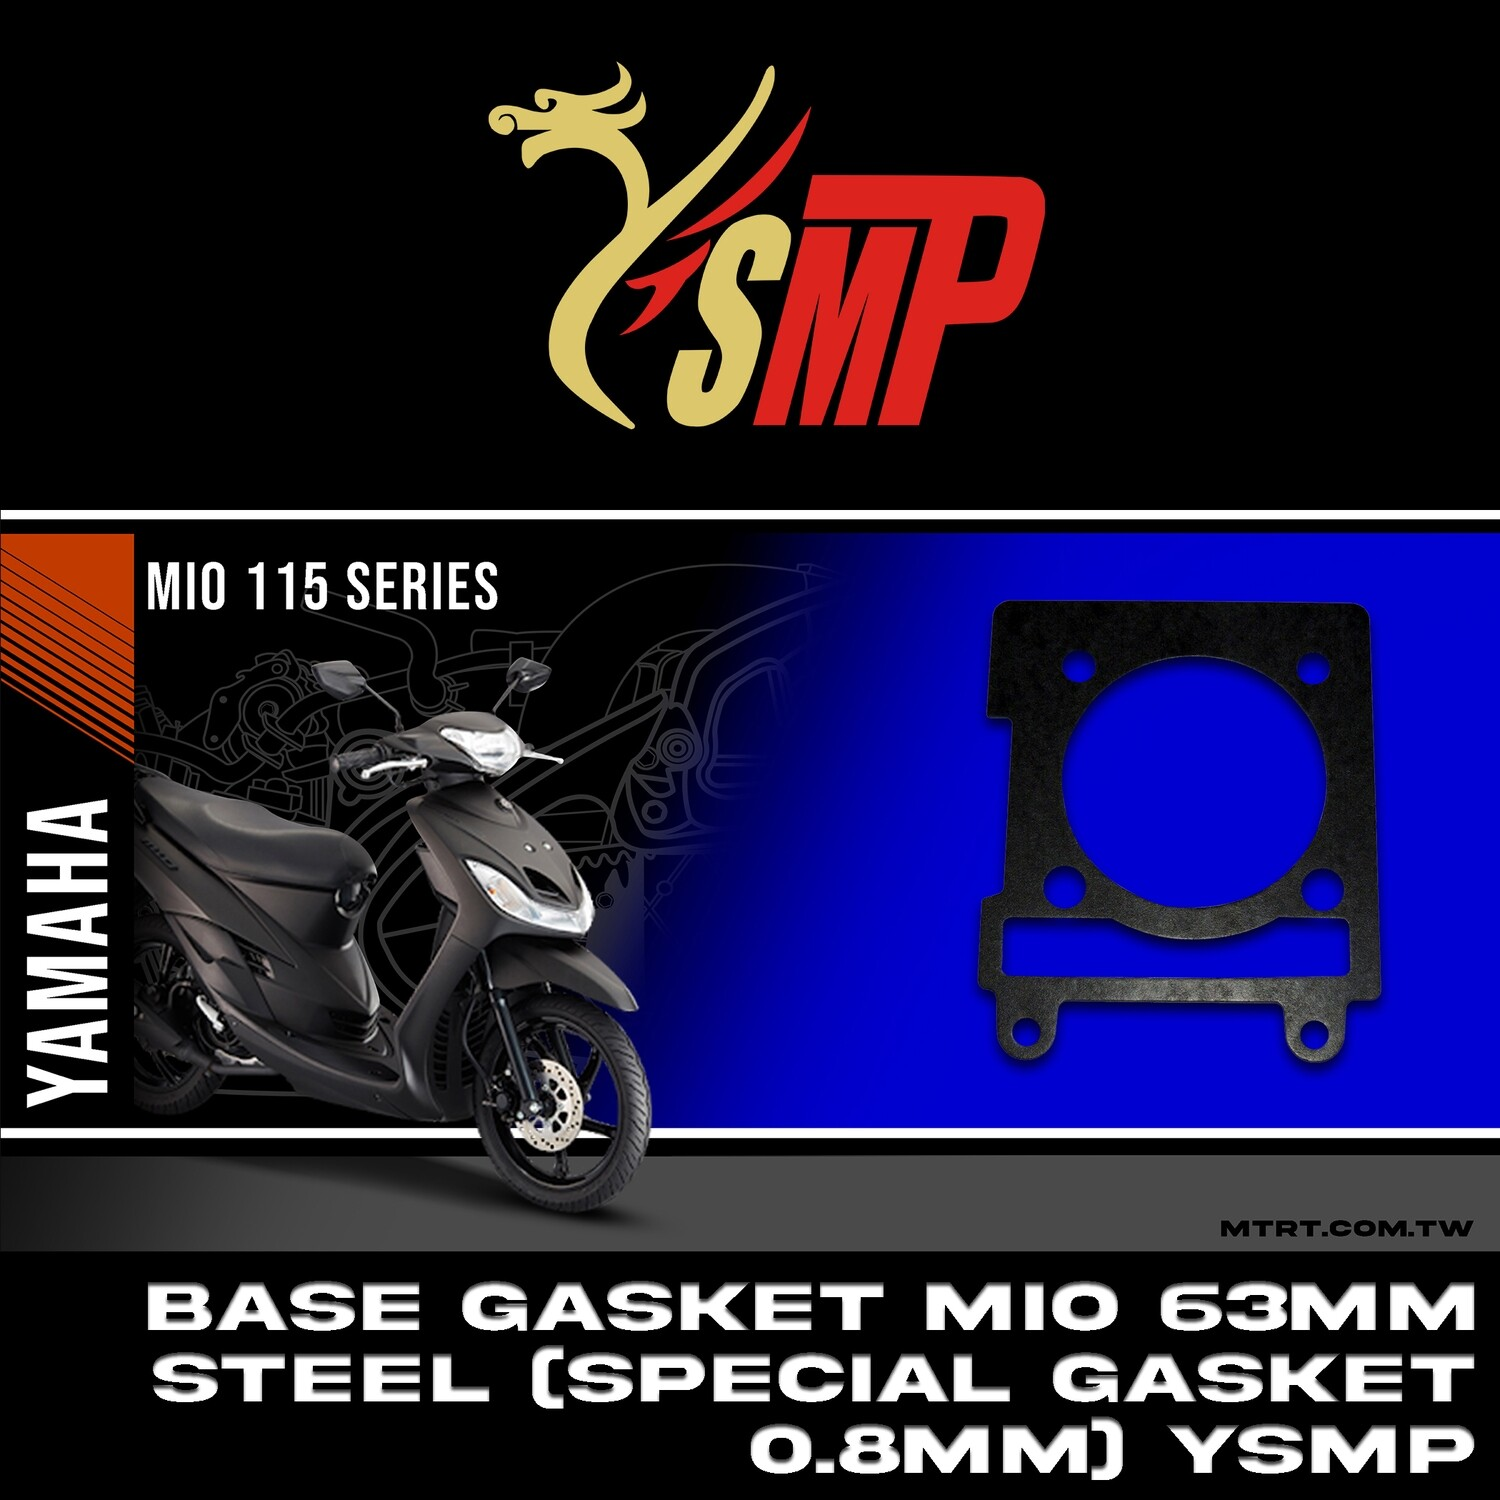 SPECIAL ALLOY BASE GASKET 63MM MIO